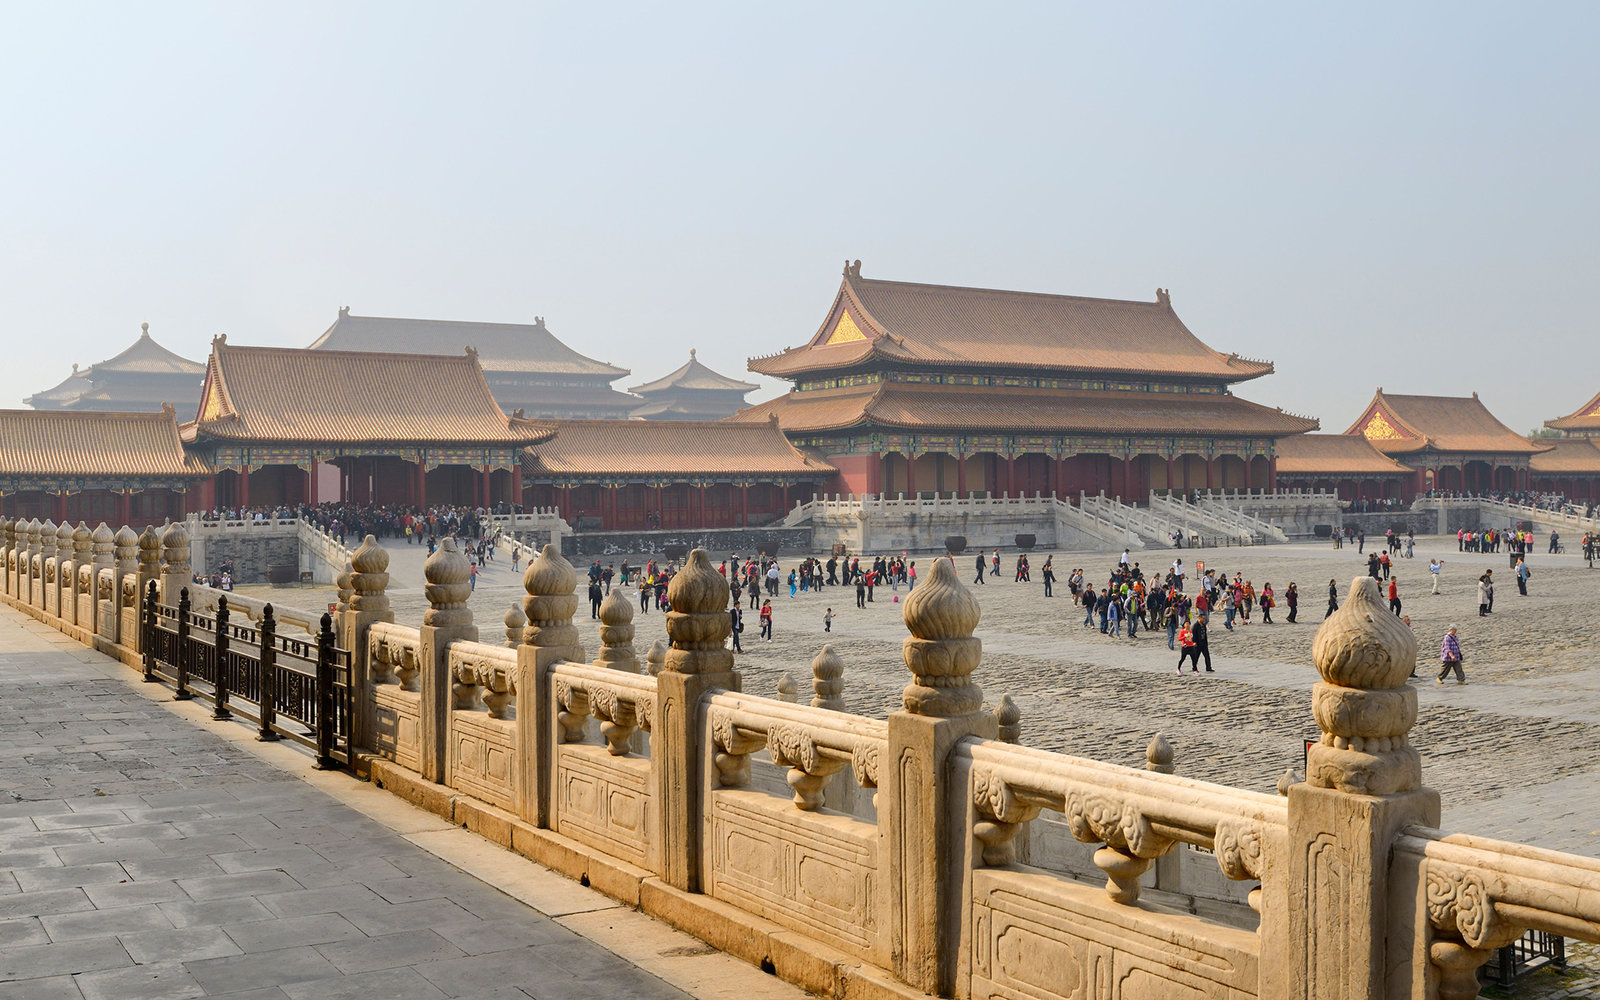 C9AYN4 Back side of the Gate of Supreme harmony and the Outer court in the Forbidden City Beijing China